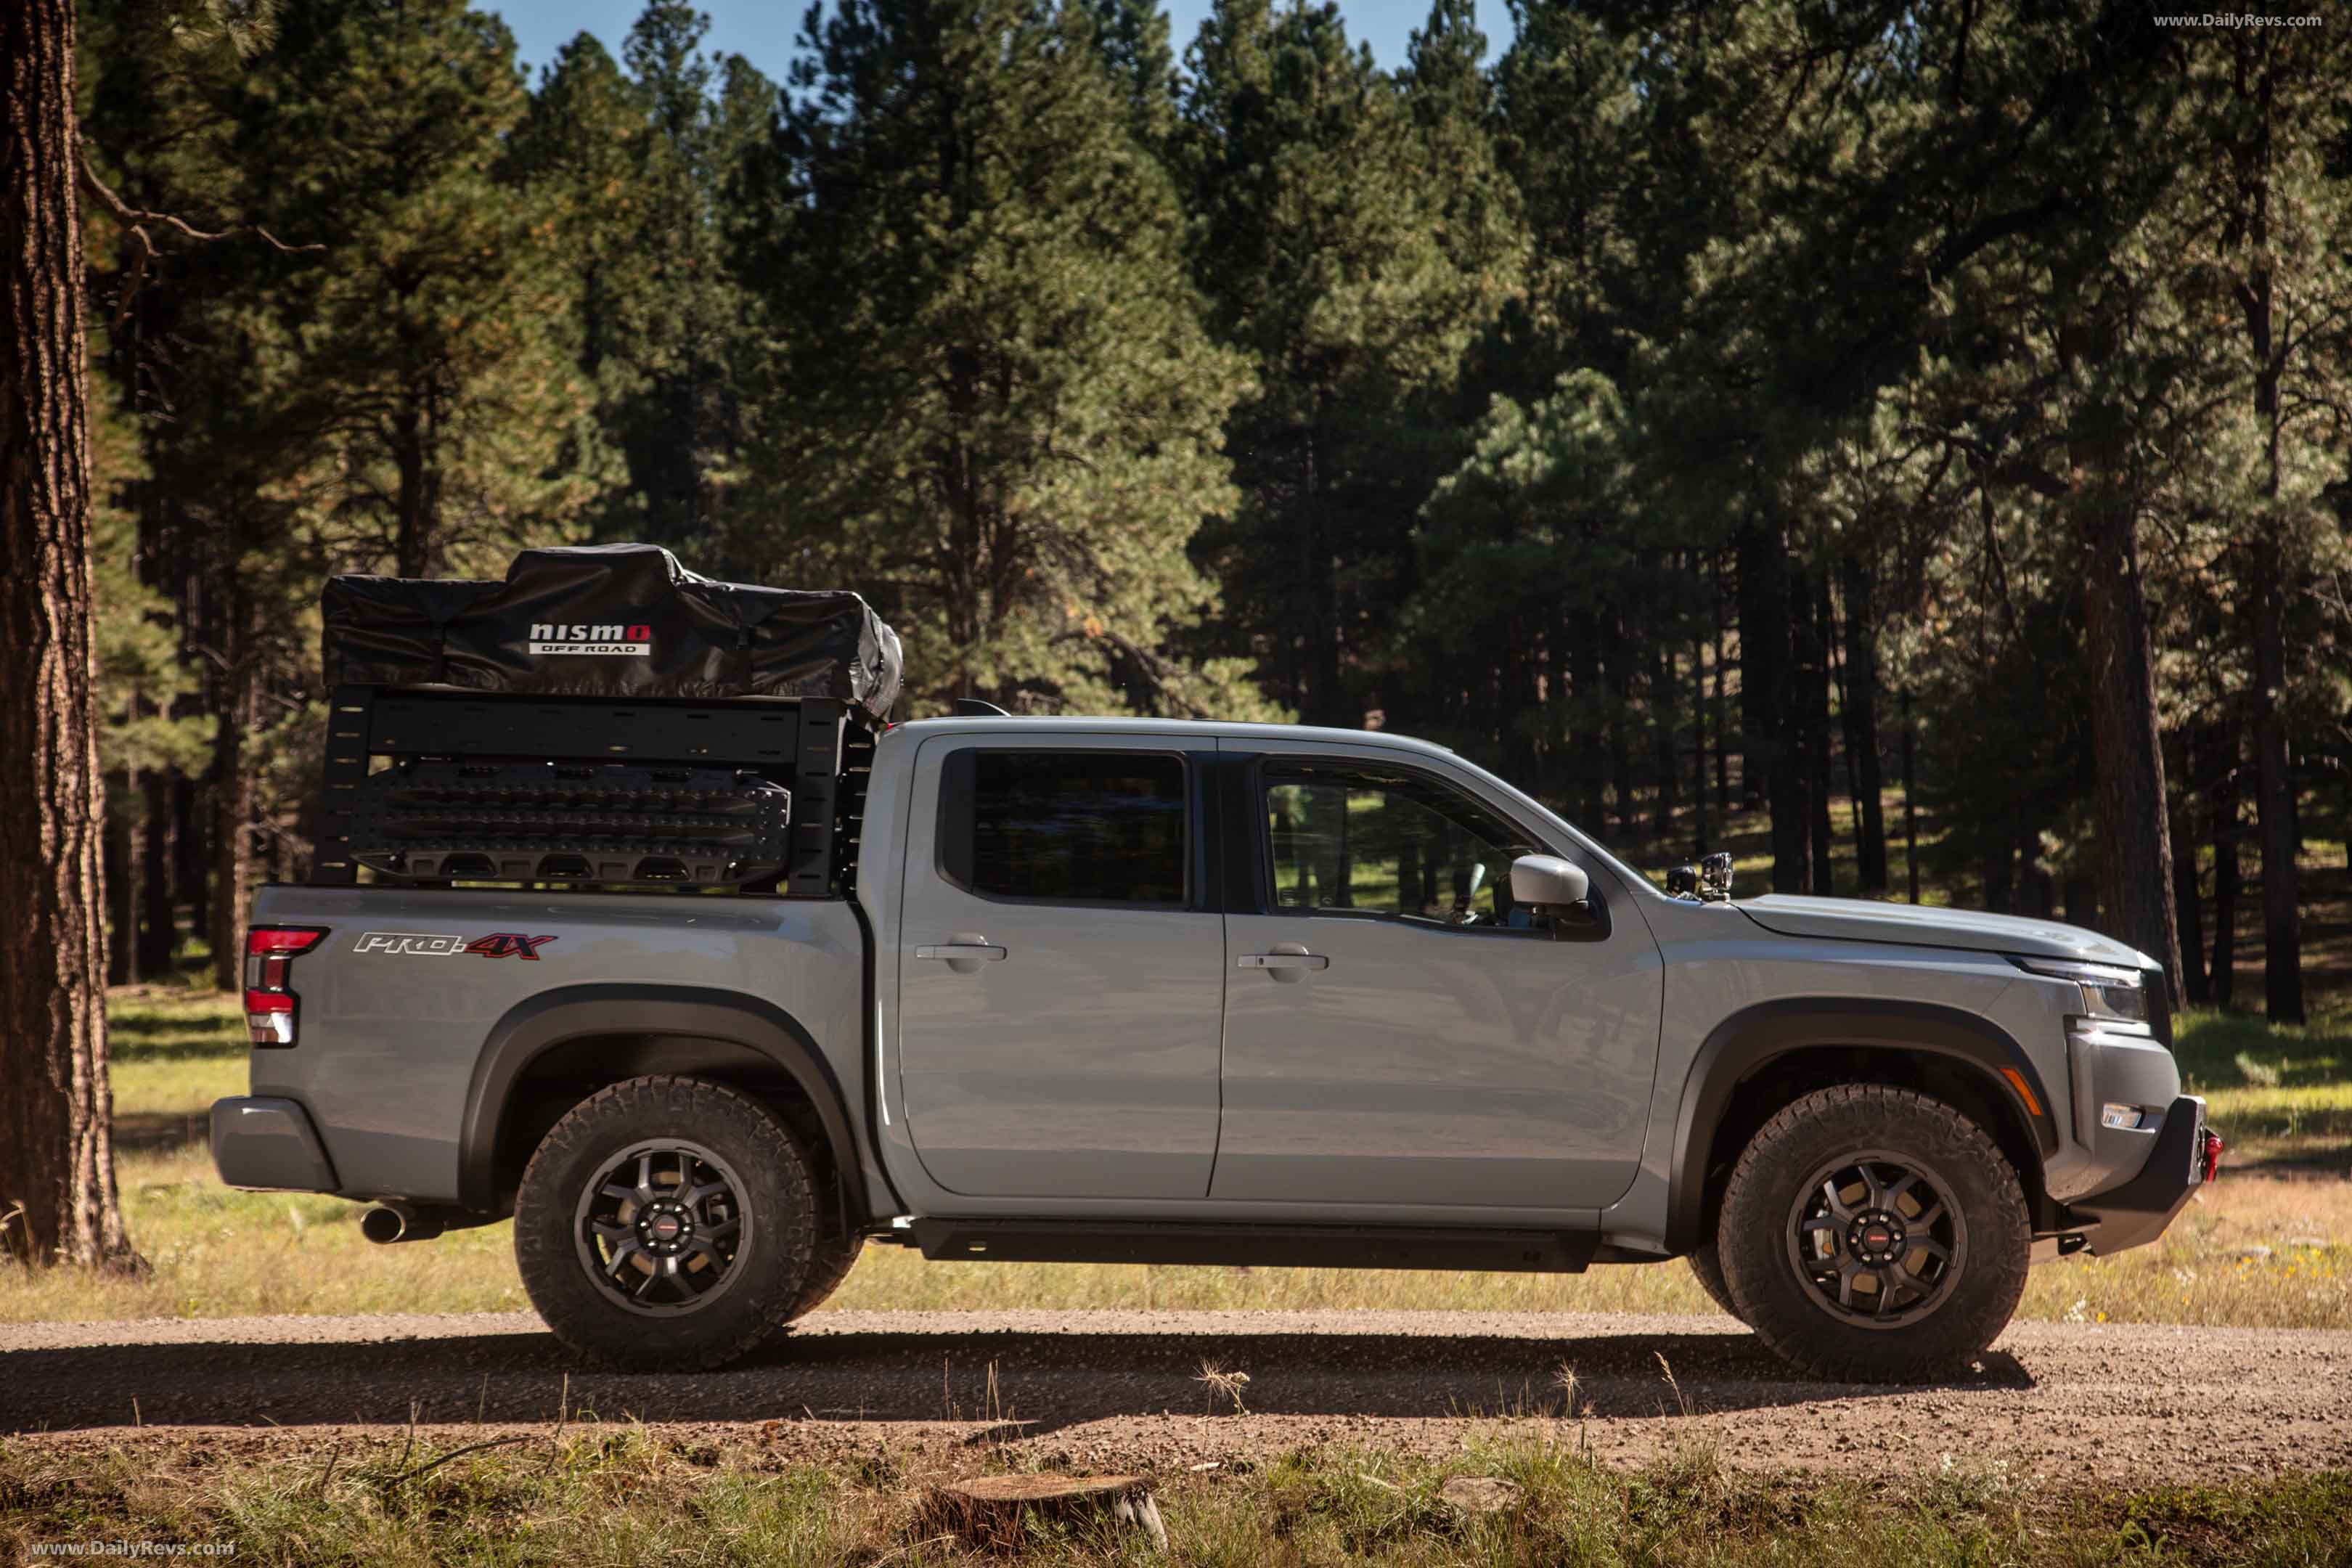 2022 Nissan Frontier Nismo Offroad Parts full